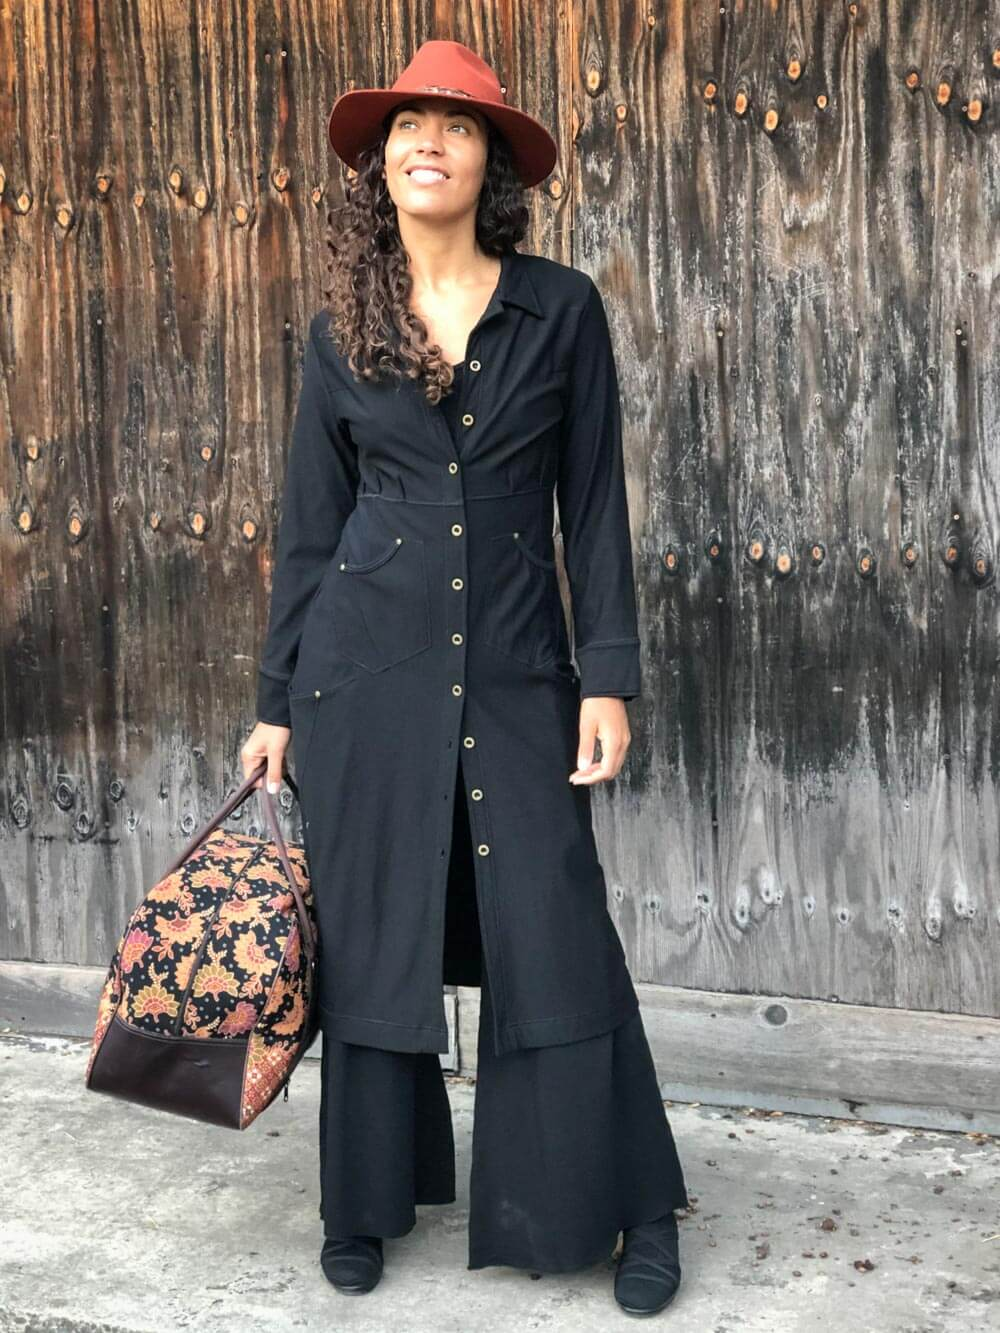 caraucci bamboo spandex black coat dress with 6 pockets and buttons up the front, can be worn as a jacket or dress #color_black